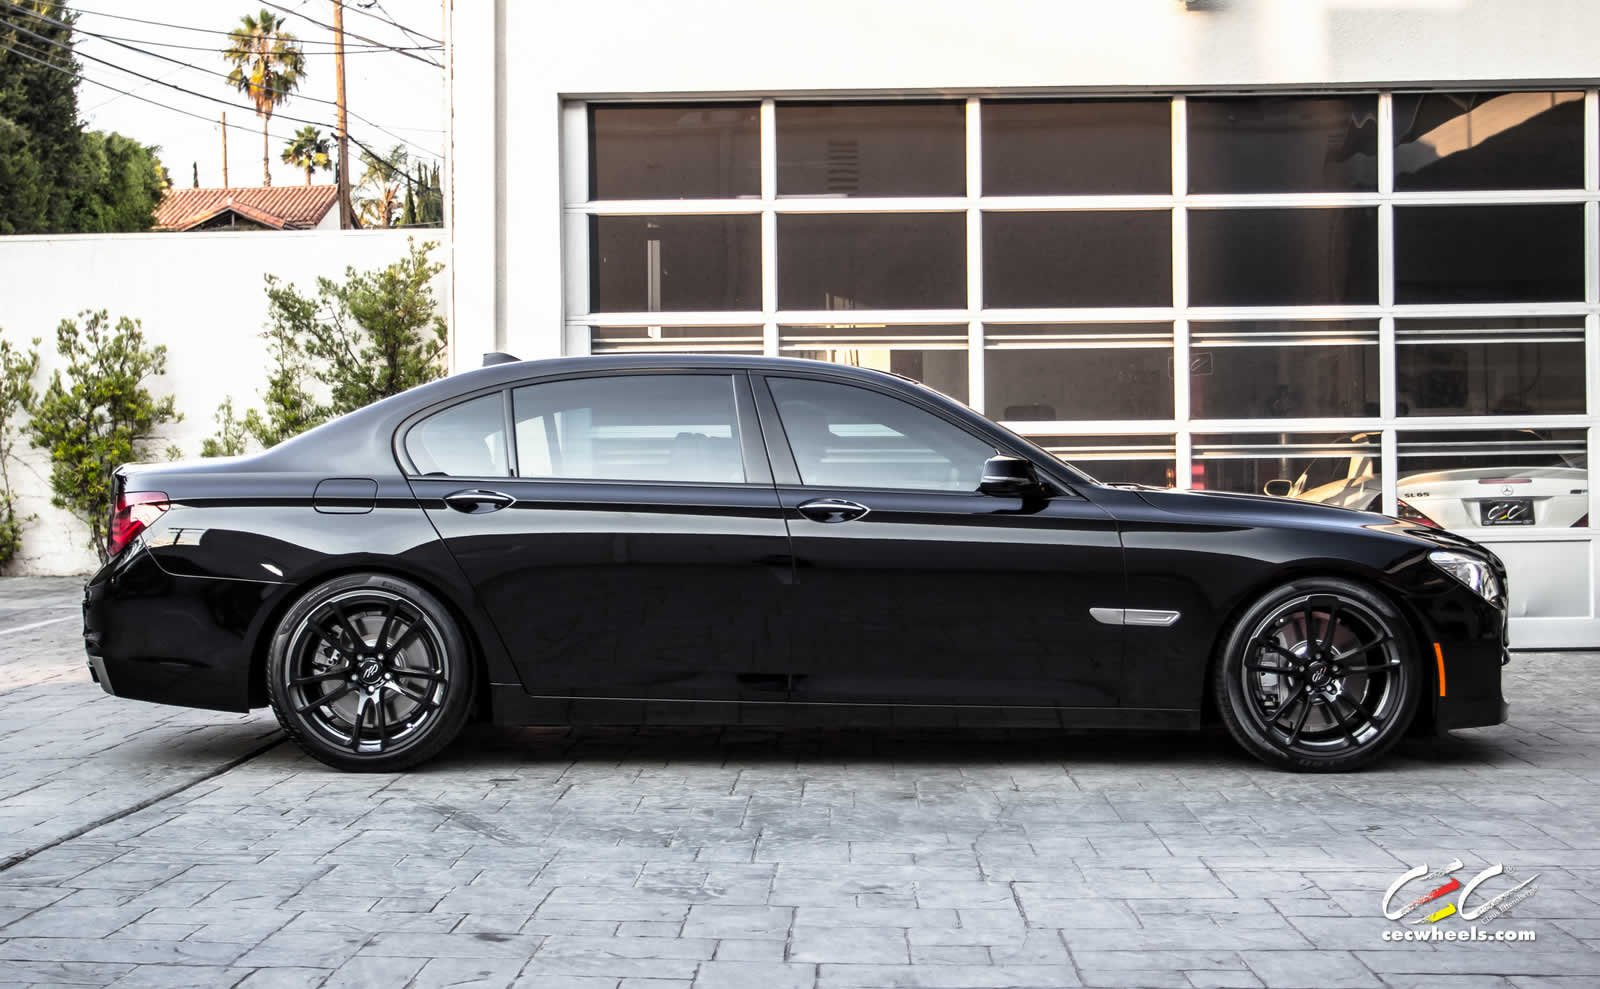 2015 Cars CEC Tuning Wheels BMW 750 Li Wallpaper